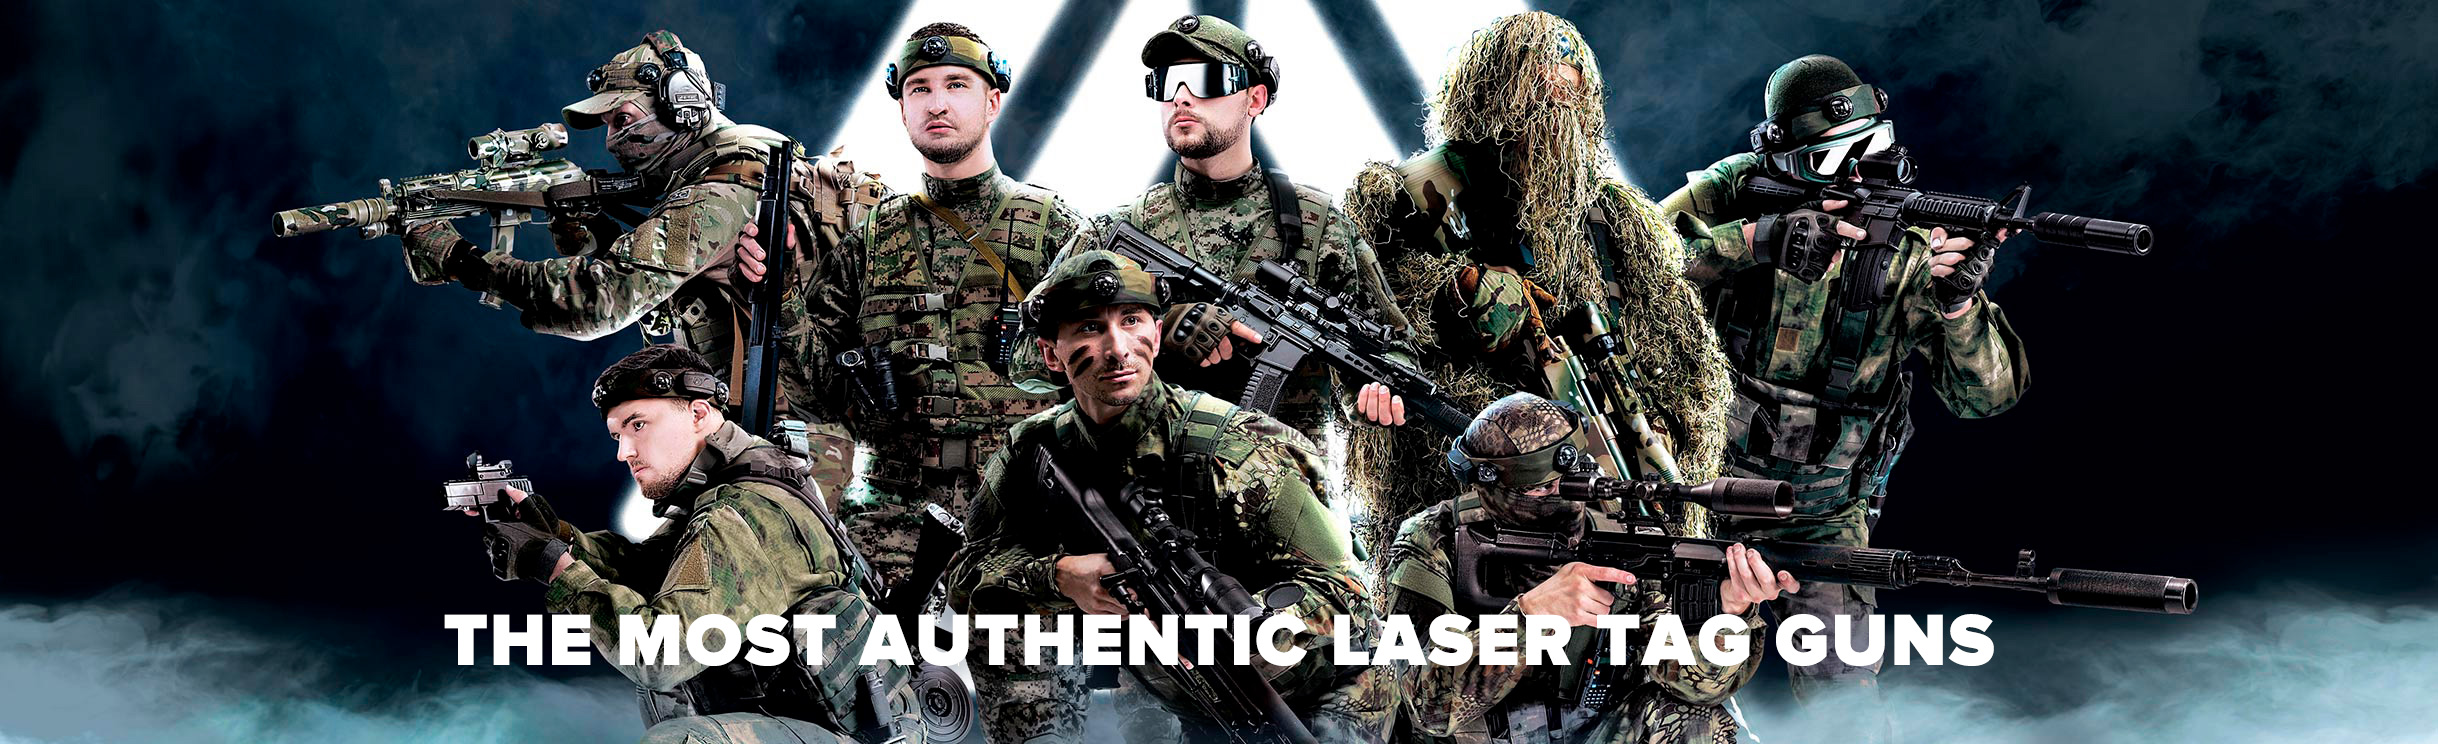 Laserwar - laser tag equipment manufacturer